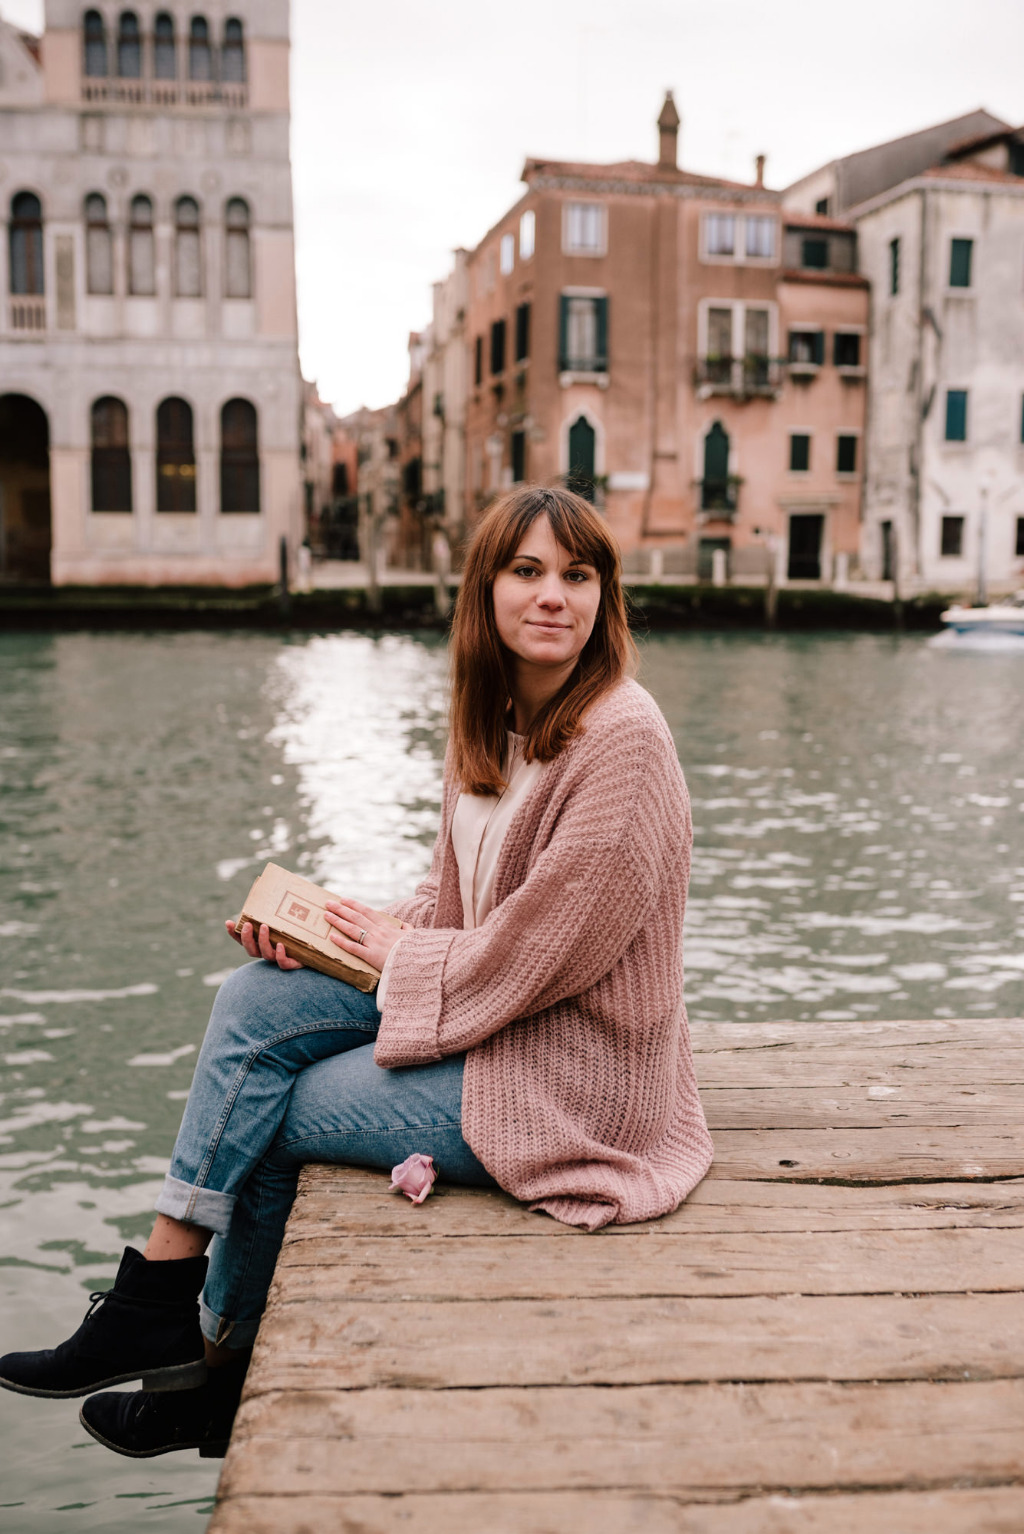 Evelina Mitali, Wedding & Events Planner in Venice during a wedding photoshooting in town. Taking a break!